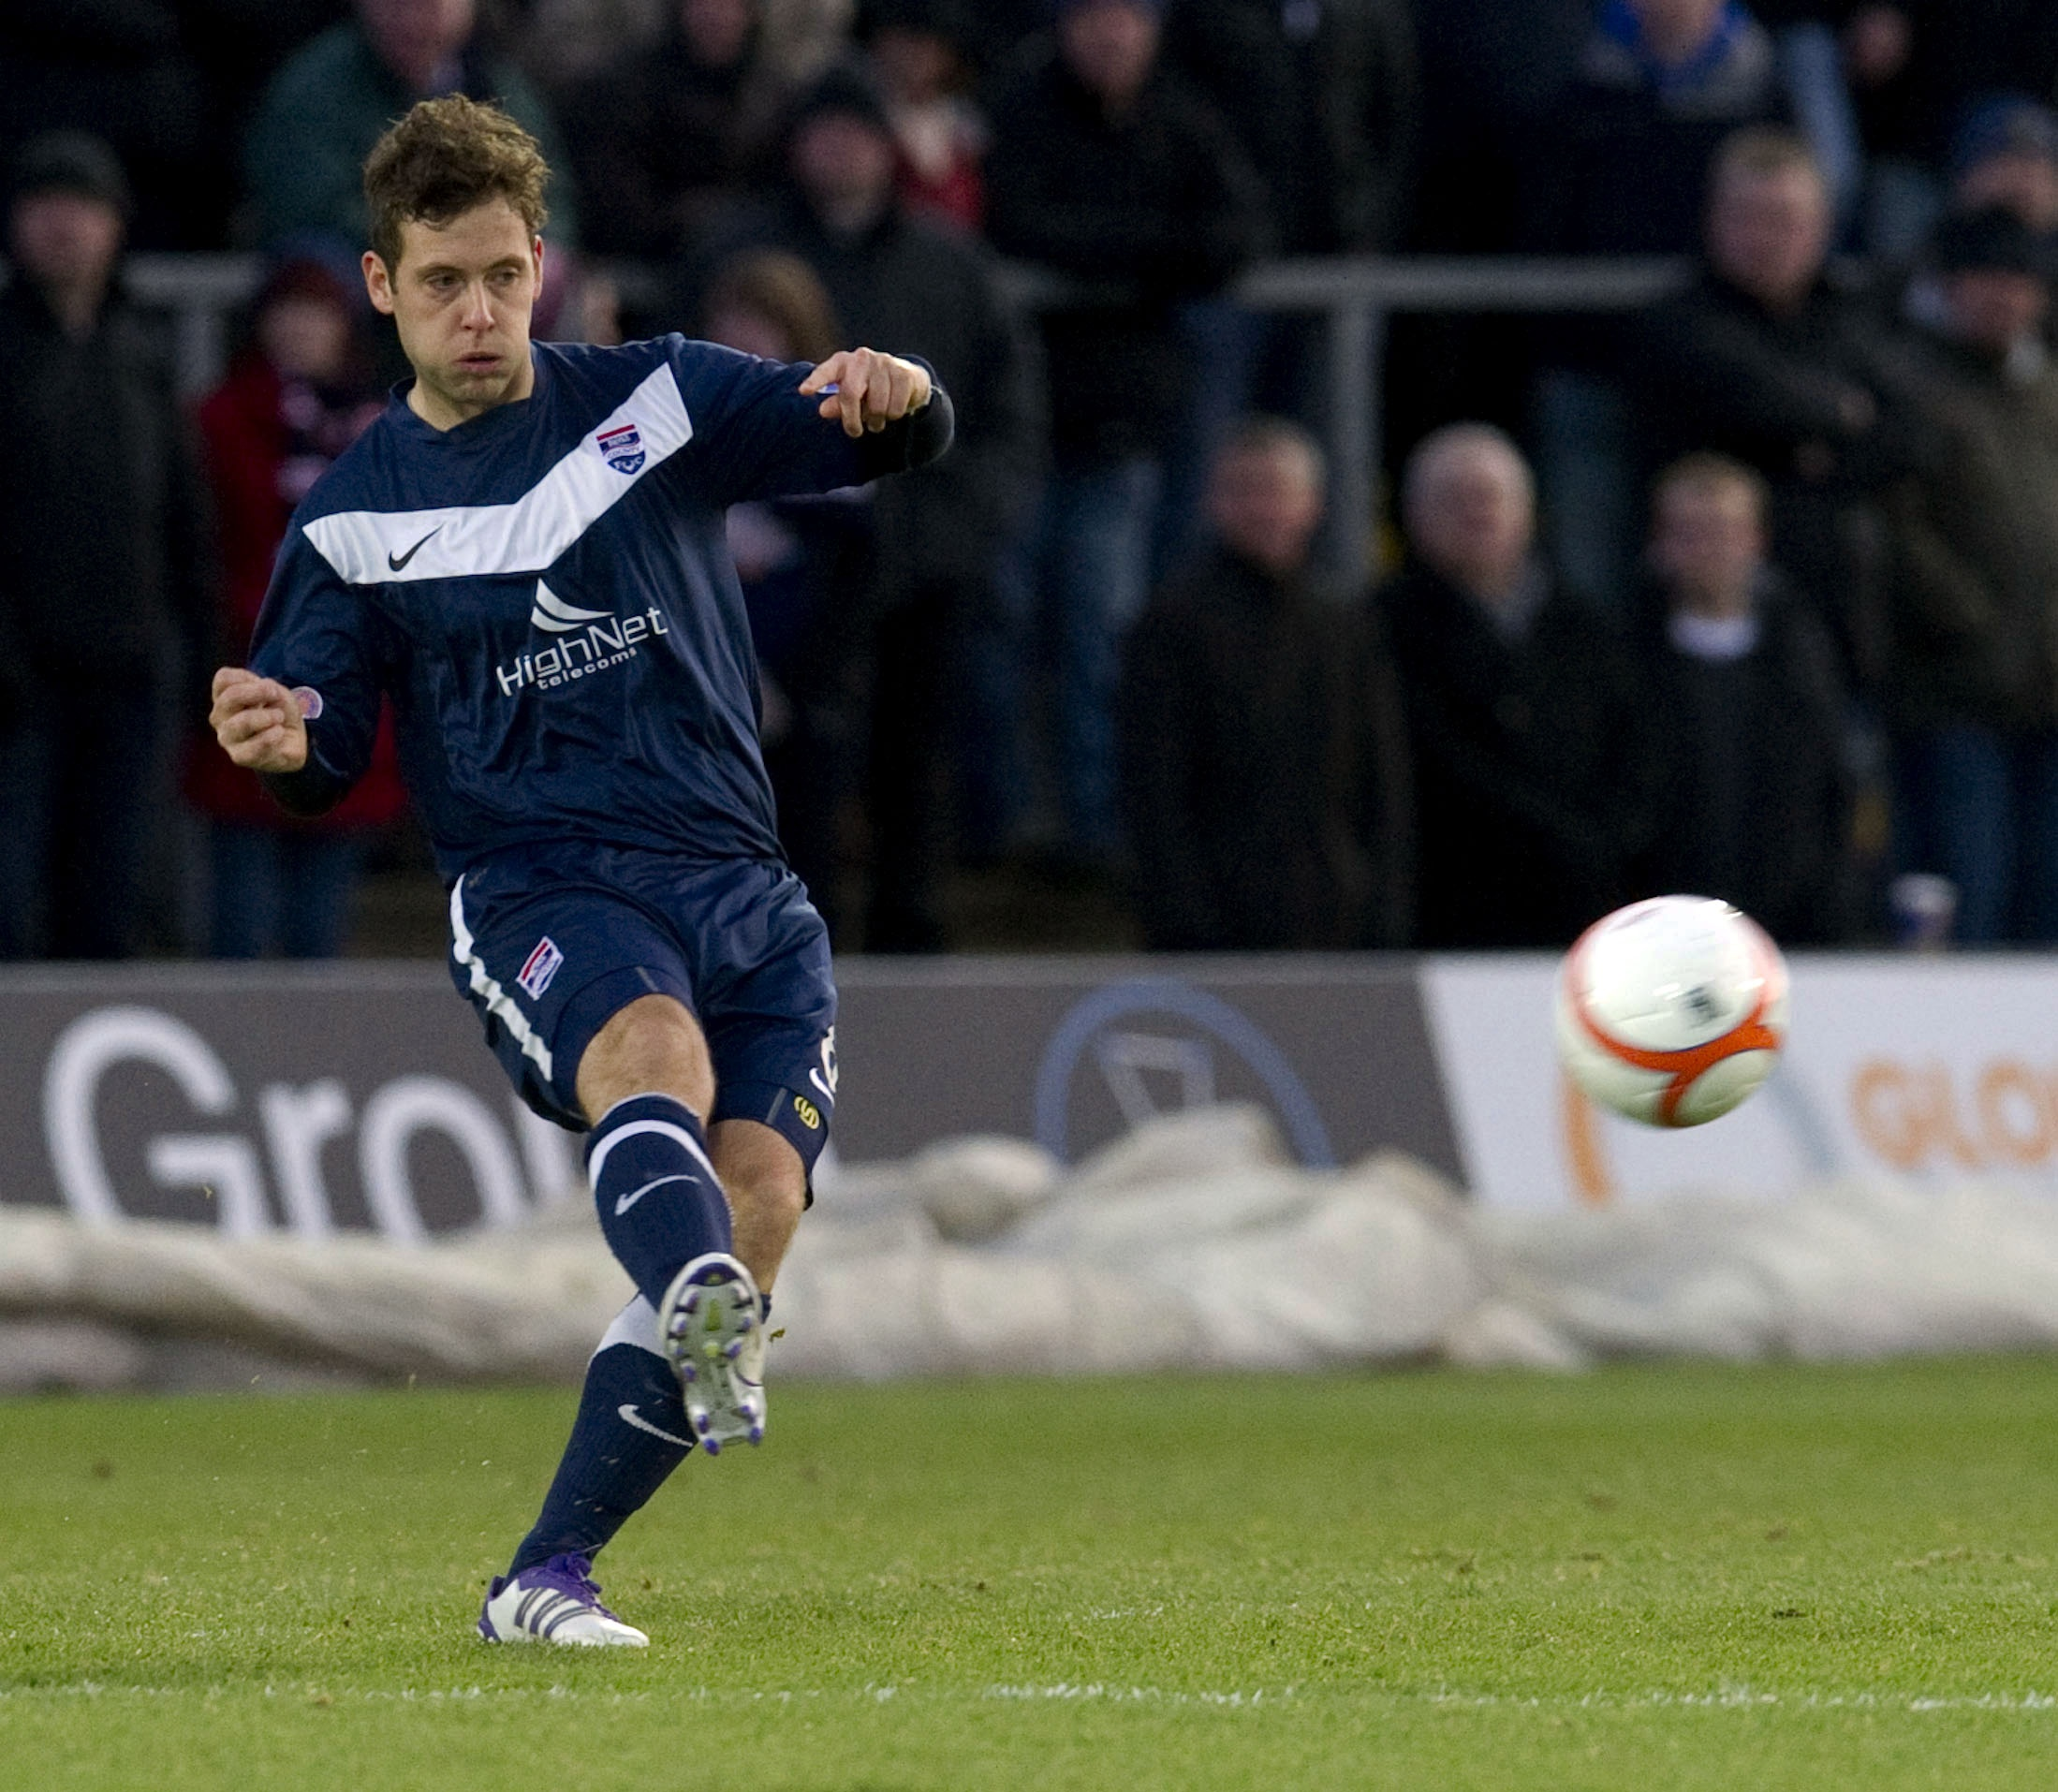 Paul Lawson in his Staggies days.